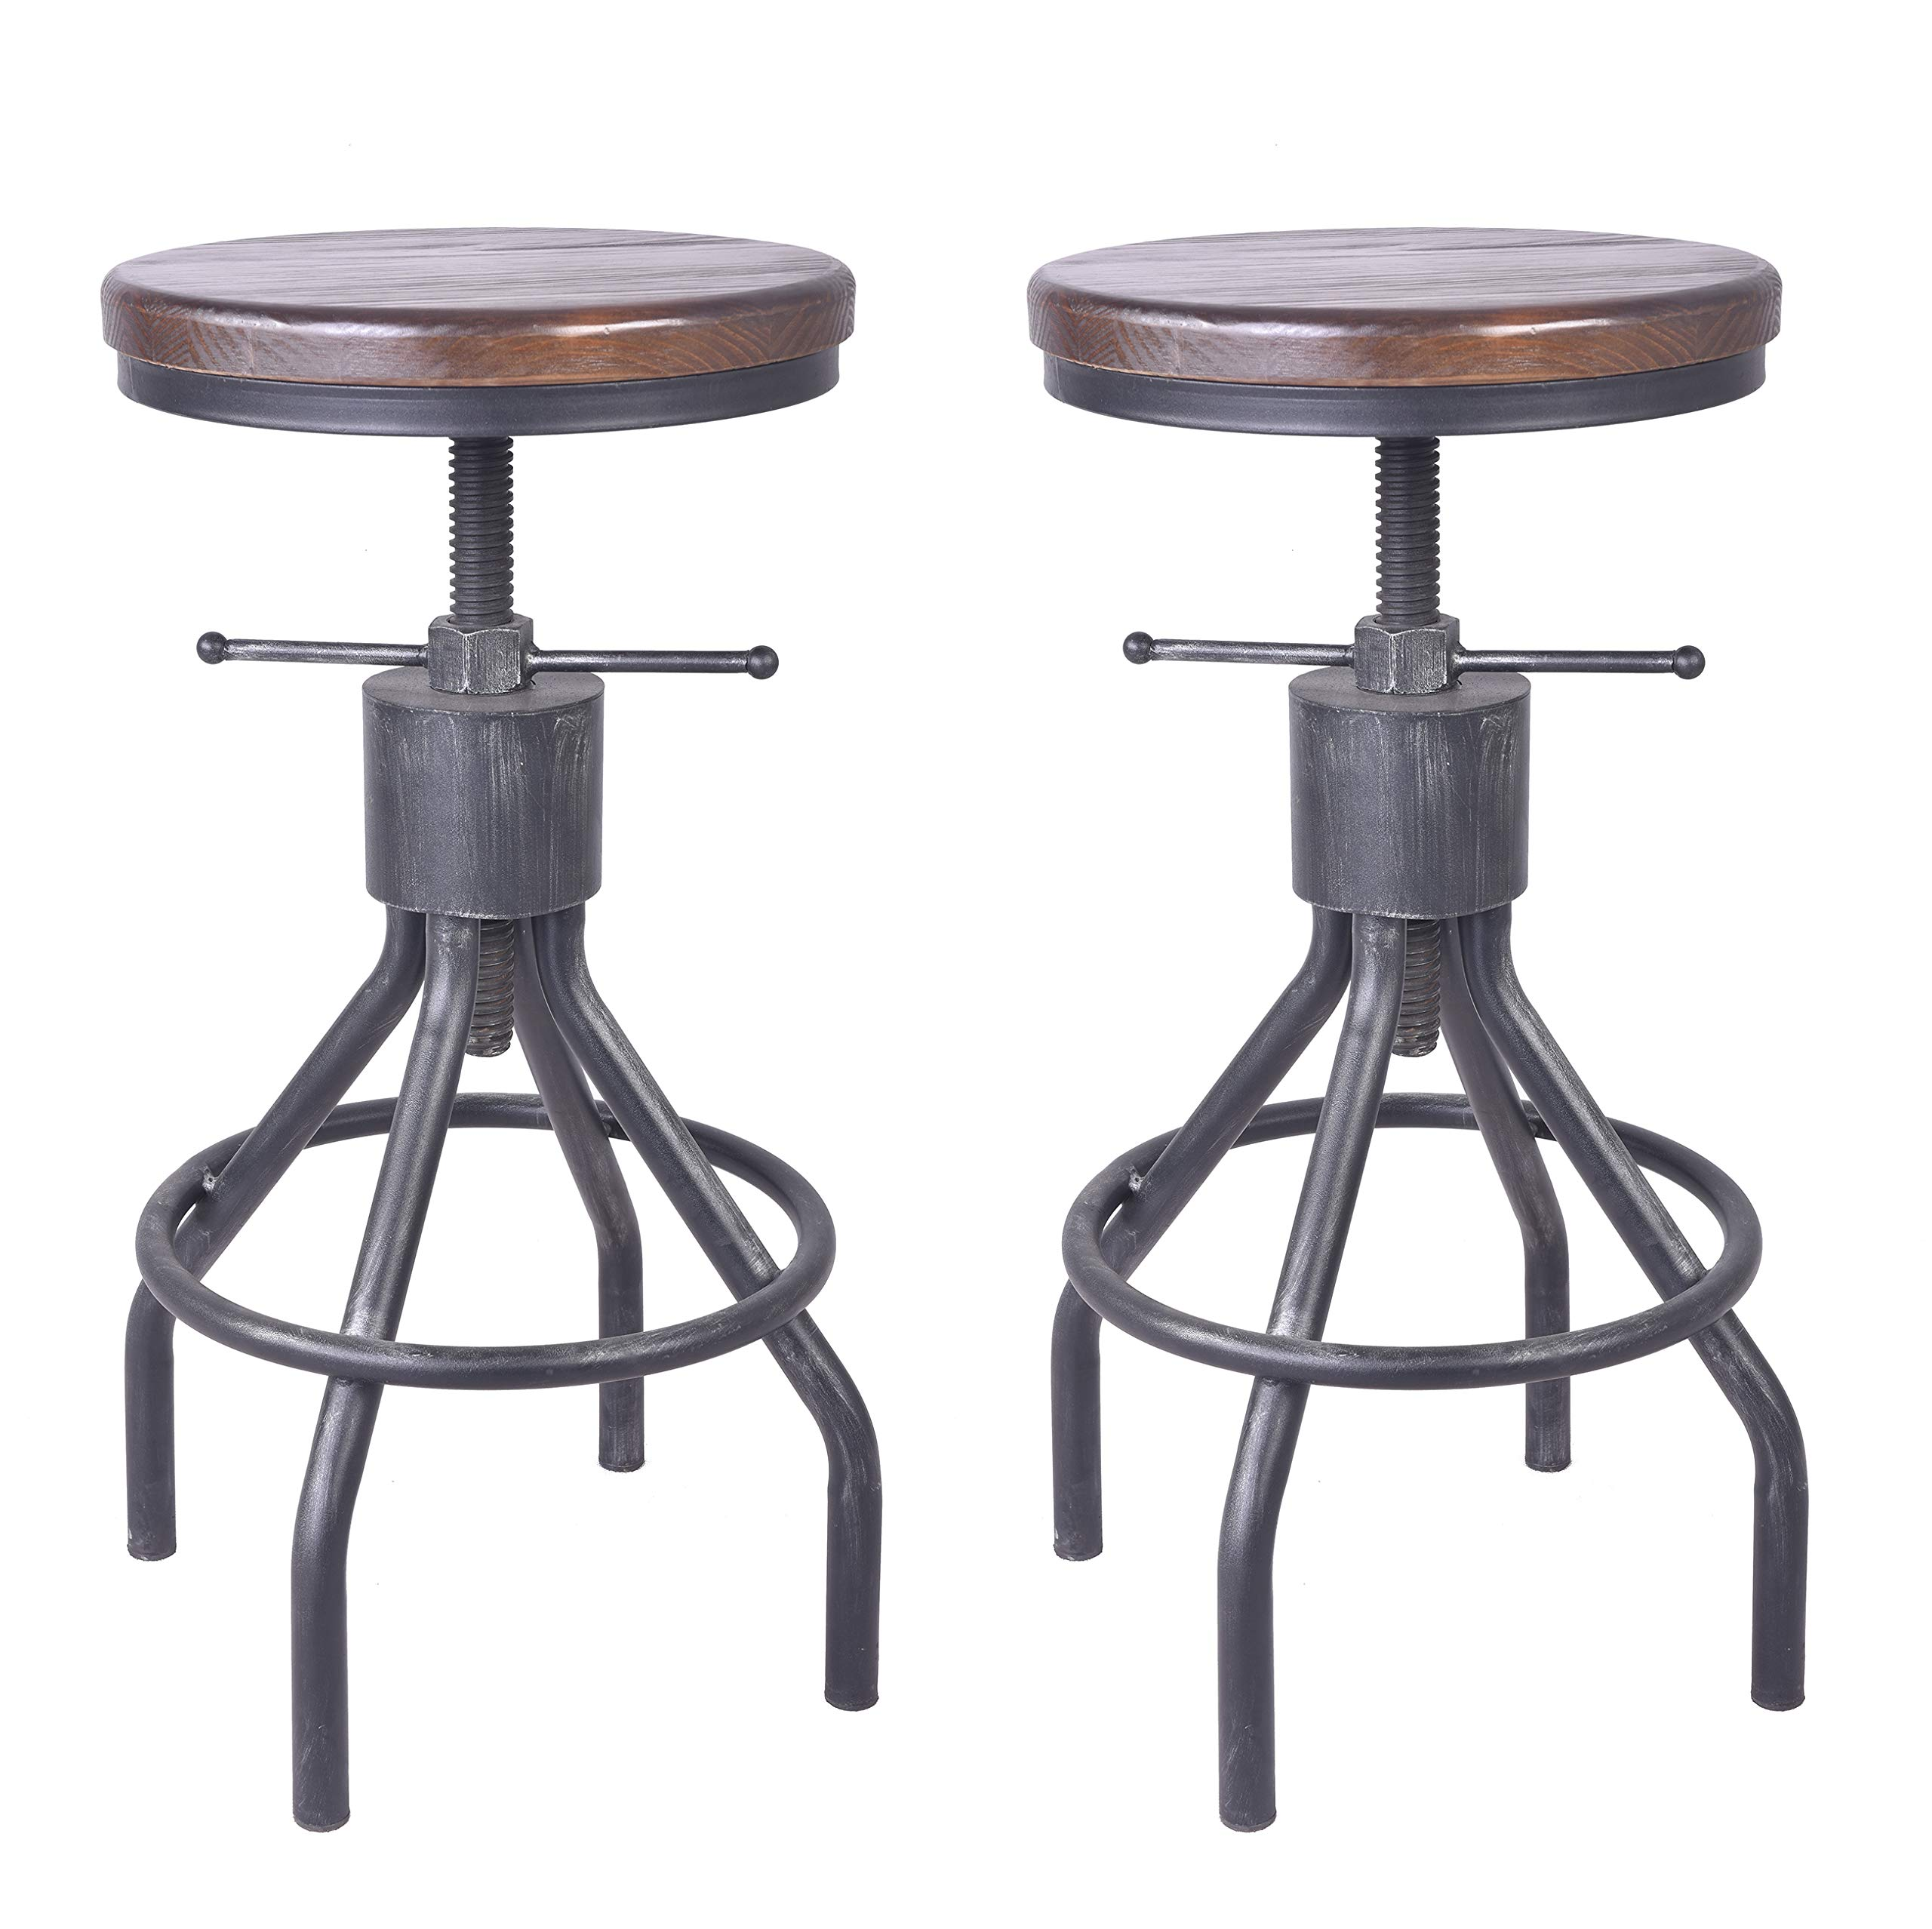 Set of 7 Industrial Bar Stool-Vintage Adjustable Round Wood Metal Swivel  Bar Stool-Cast Iron-73-7 Inch Tall Counter Bar Height Farmhouse Kitchen